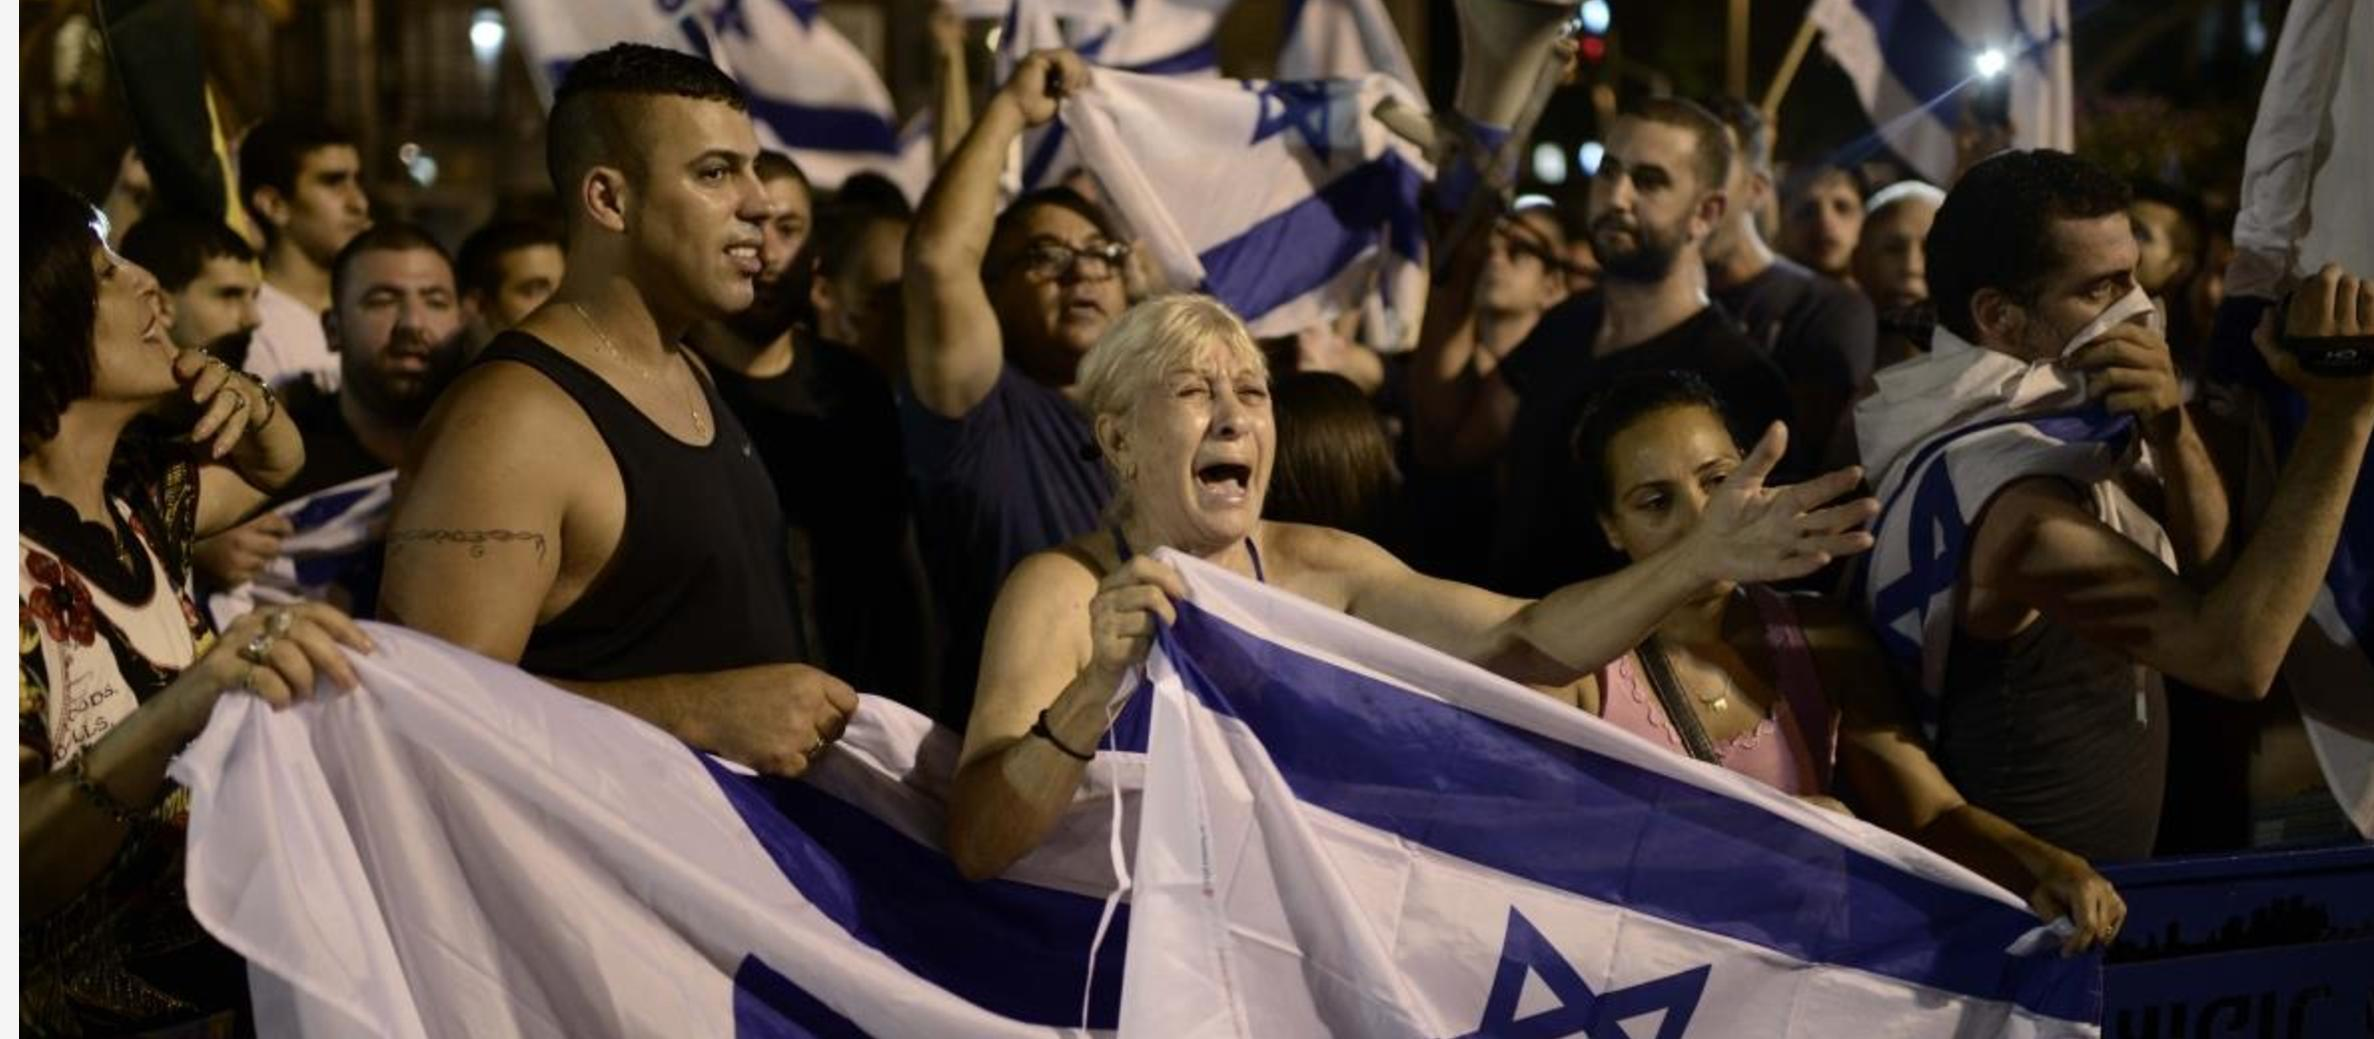 Hundreds rally for Israel in Poland